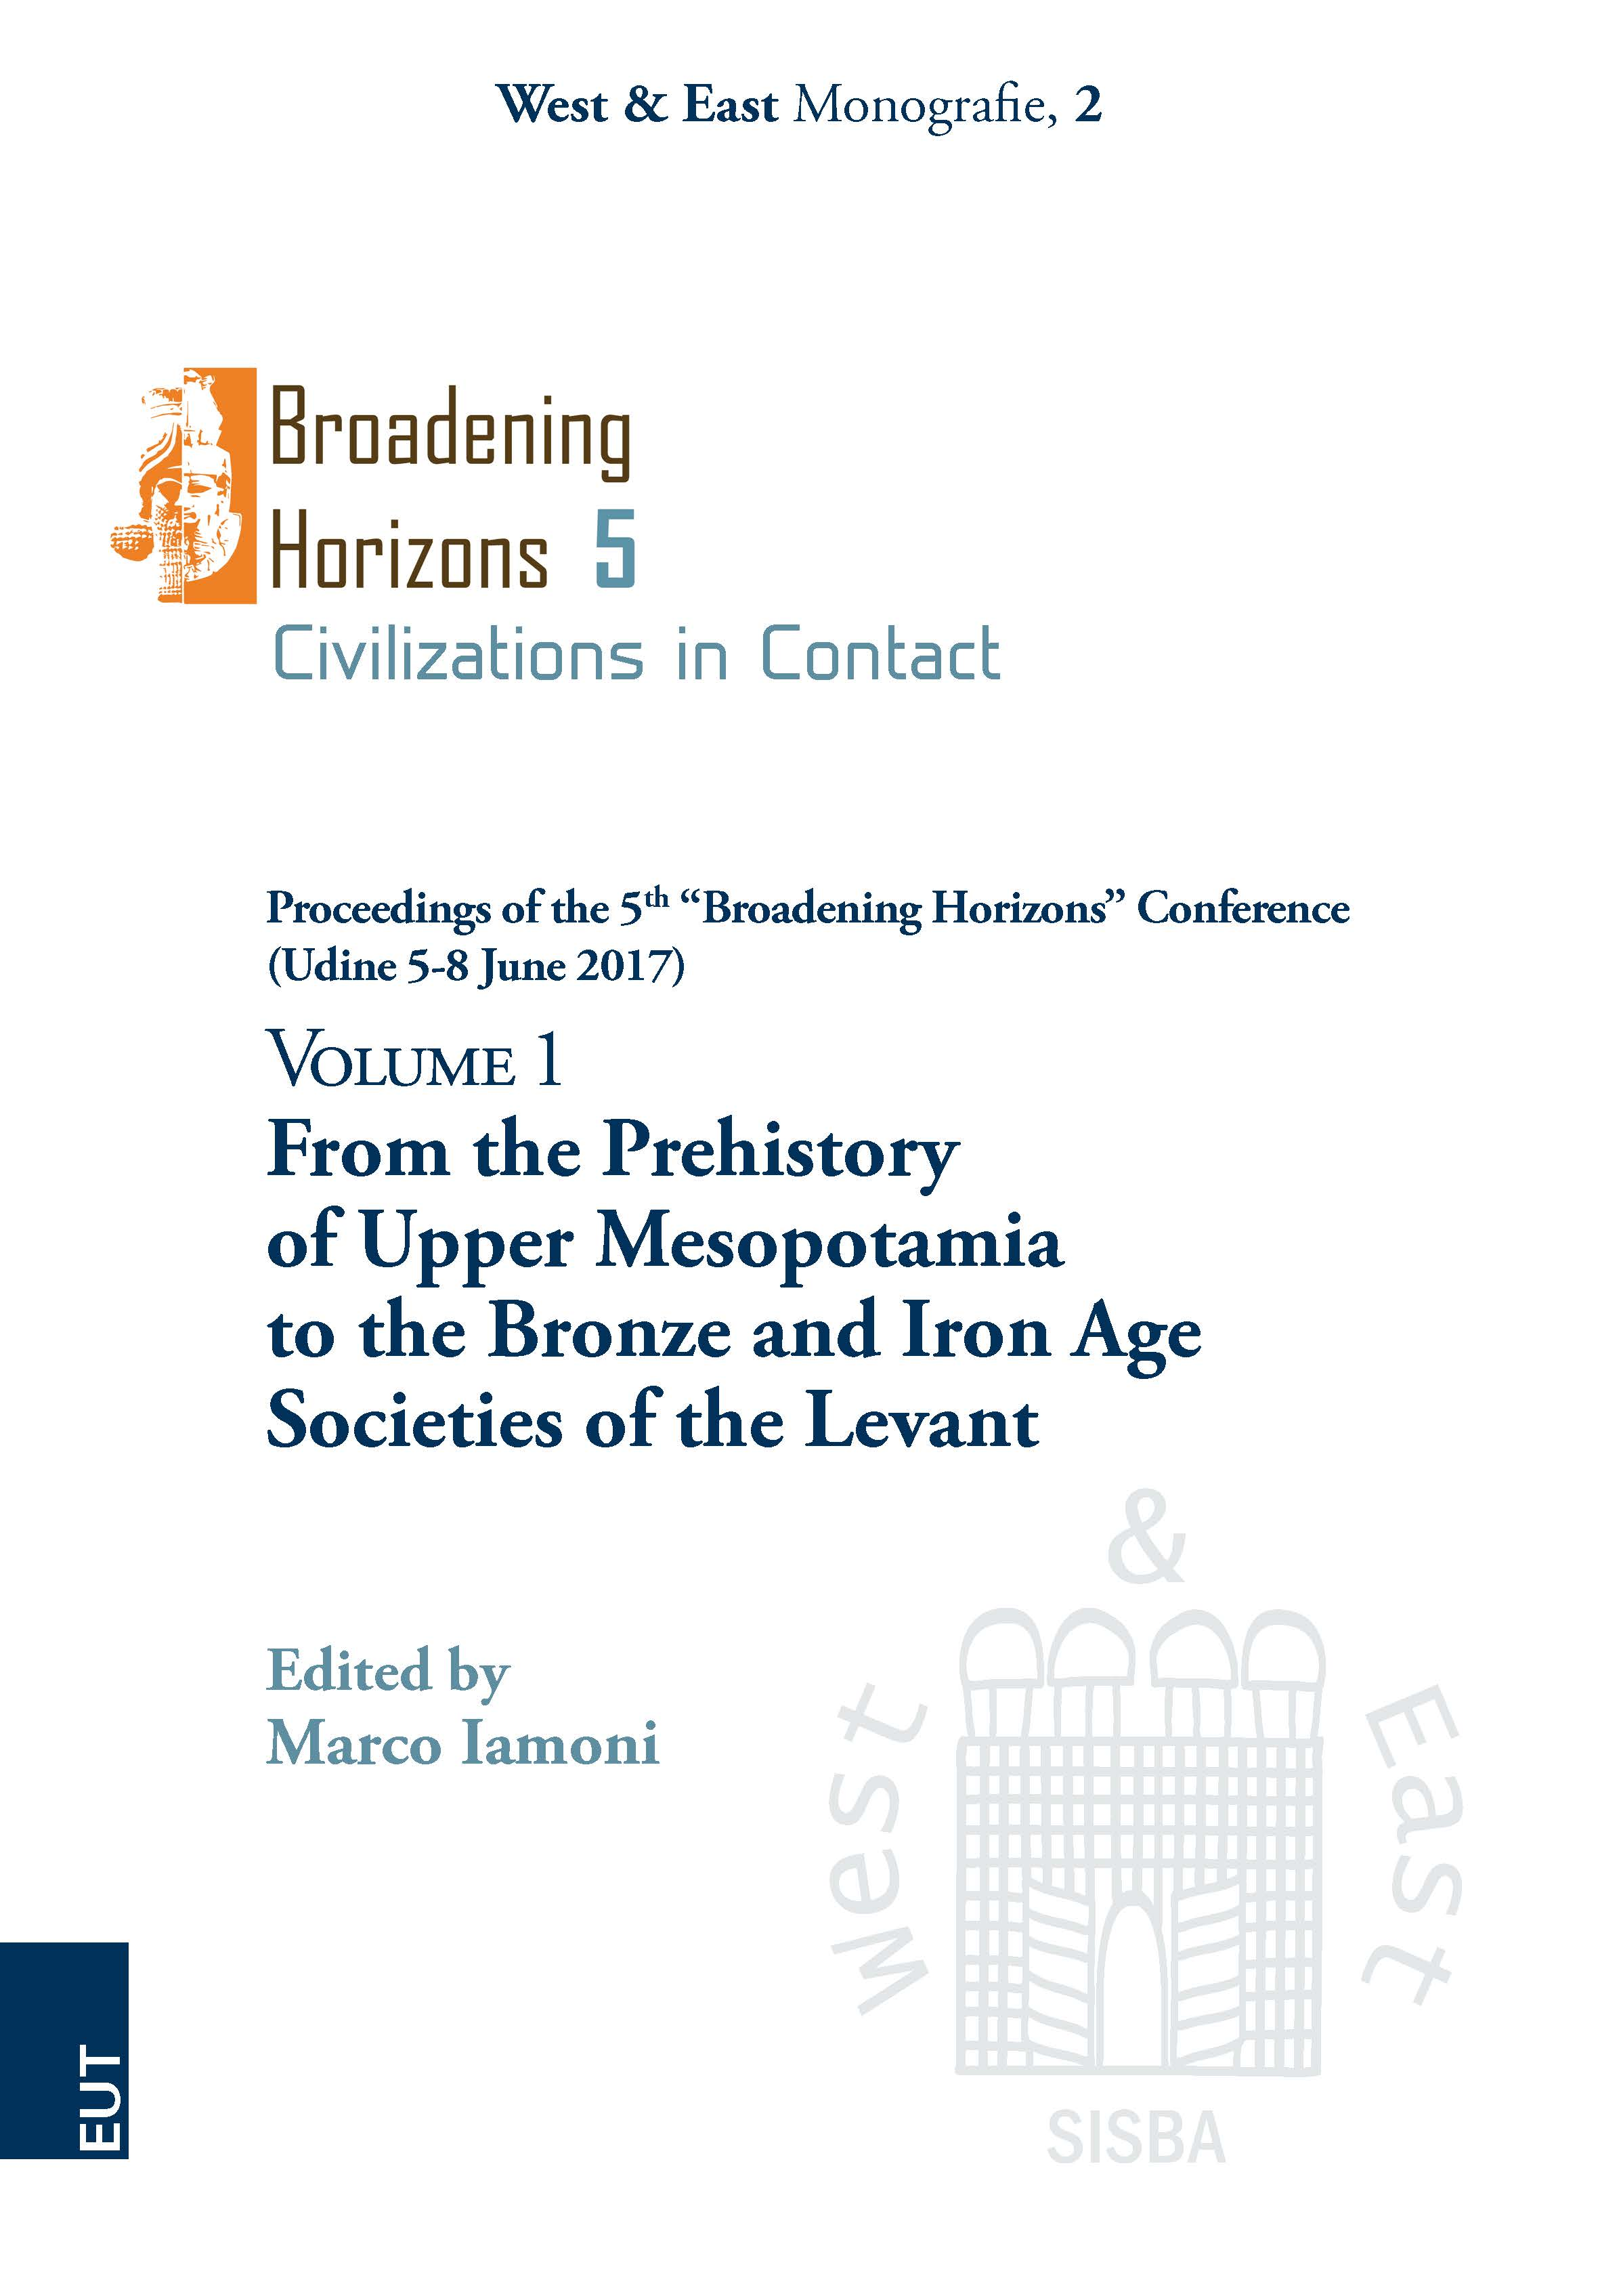 """From the Prehistory of Upper Mesopotamia to the Bronze and Iron Age Societies of the Levant. Volume 1. Proceedings of the 5<sup>th</sup> """"Broadening Horizons"""" Conference (Udine 5-8 June 2017)"""